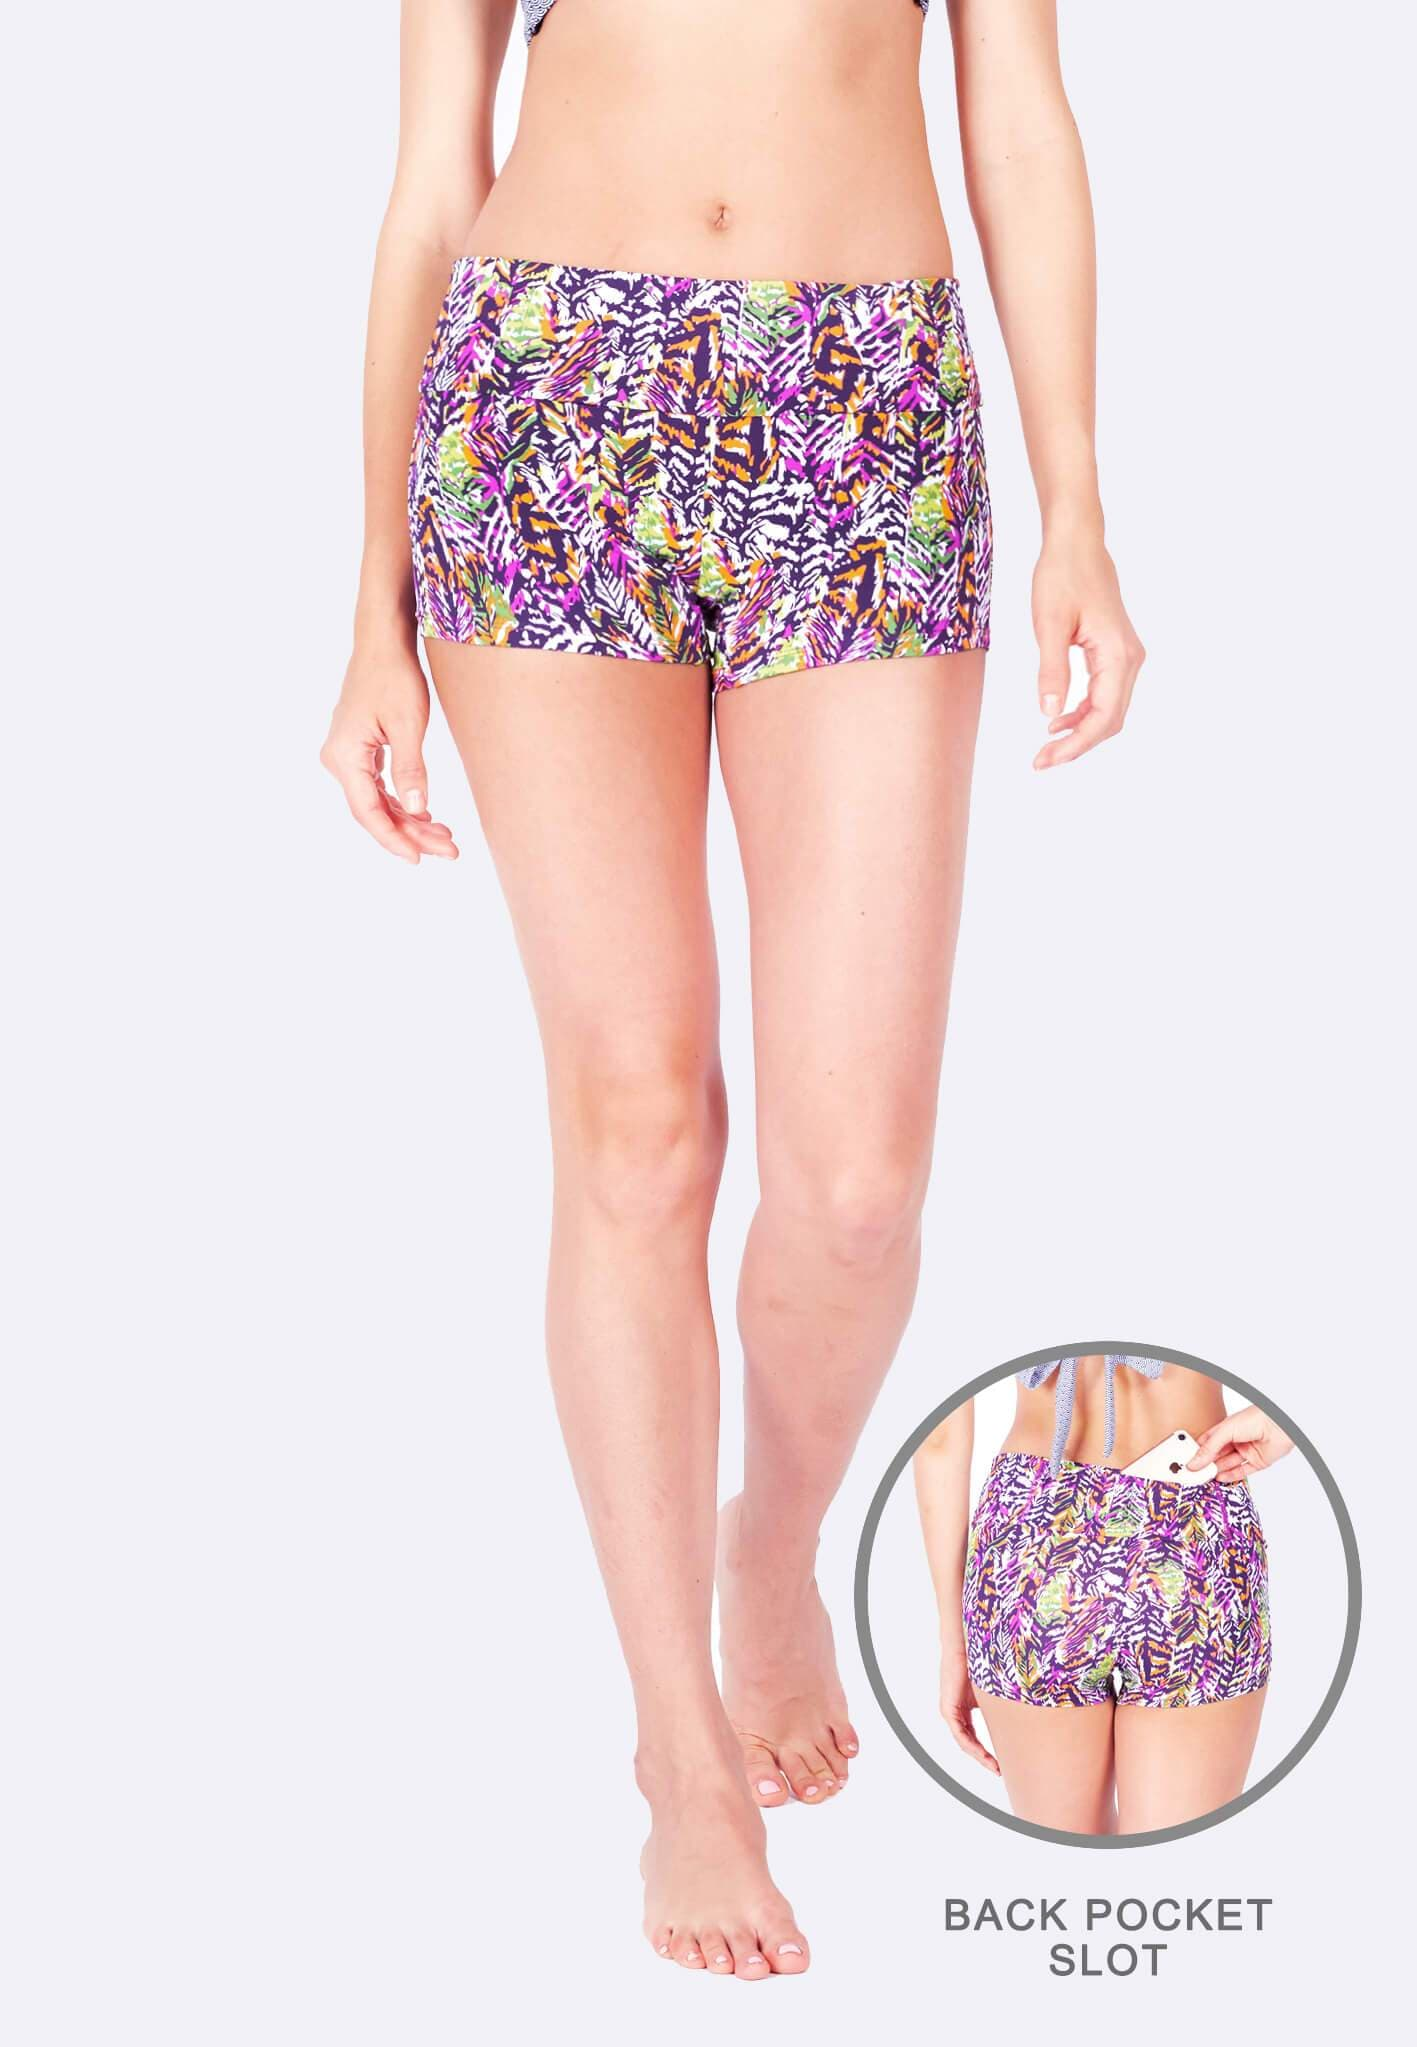 Athleiswim™ Boyshorts in Wilder Print - FUNFIT